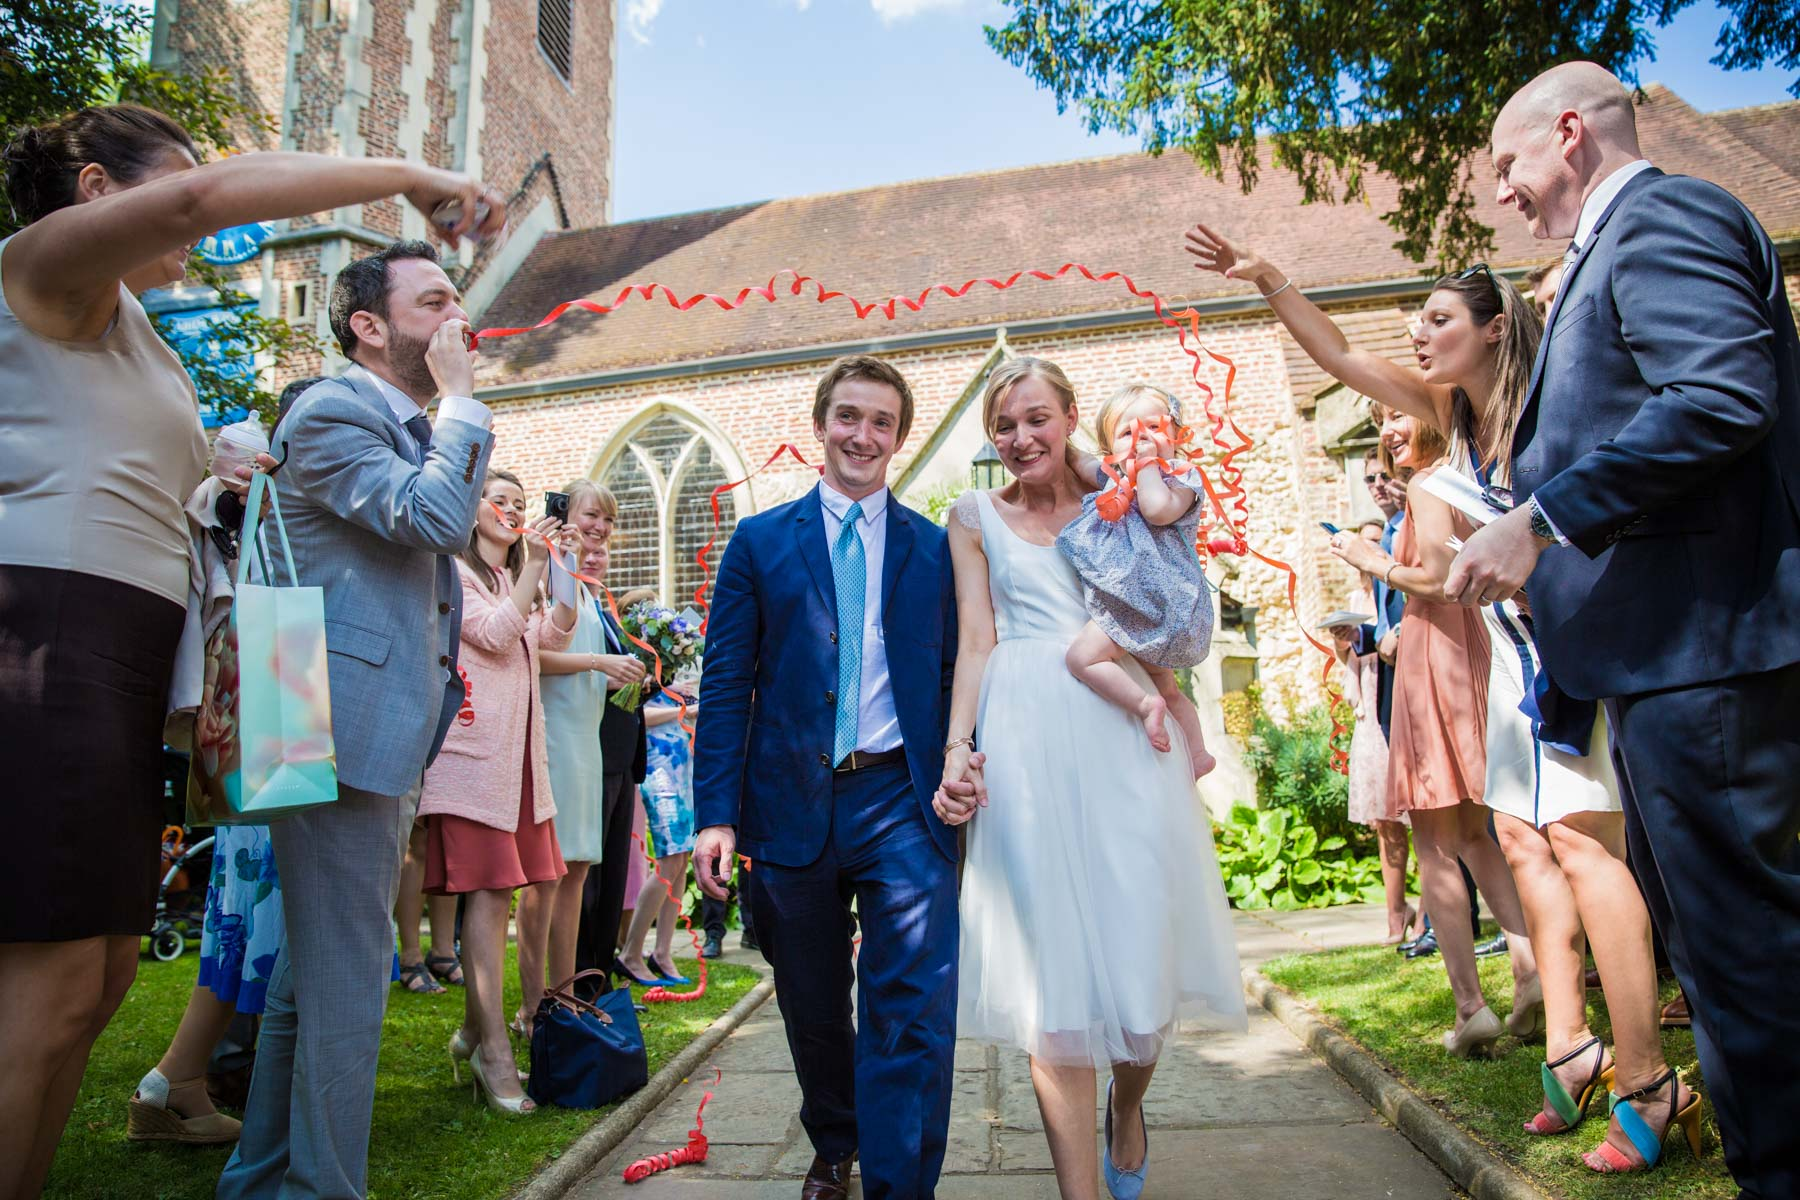 West London Wedding Photography by Richard Murgatroyd